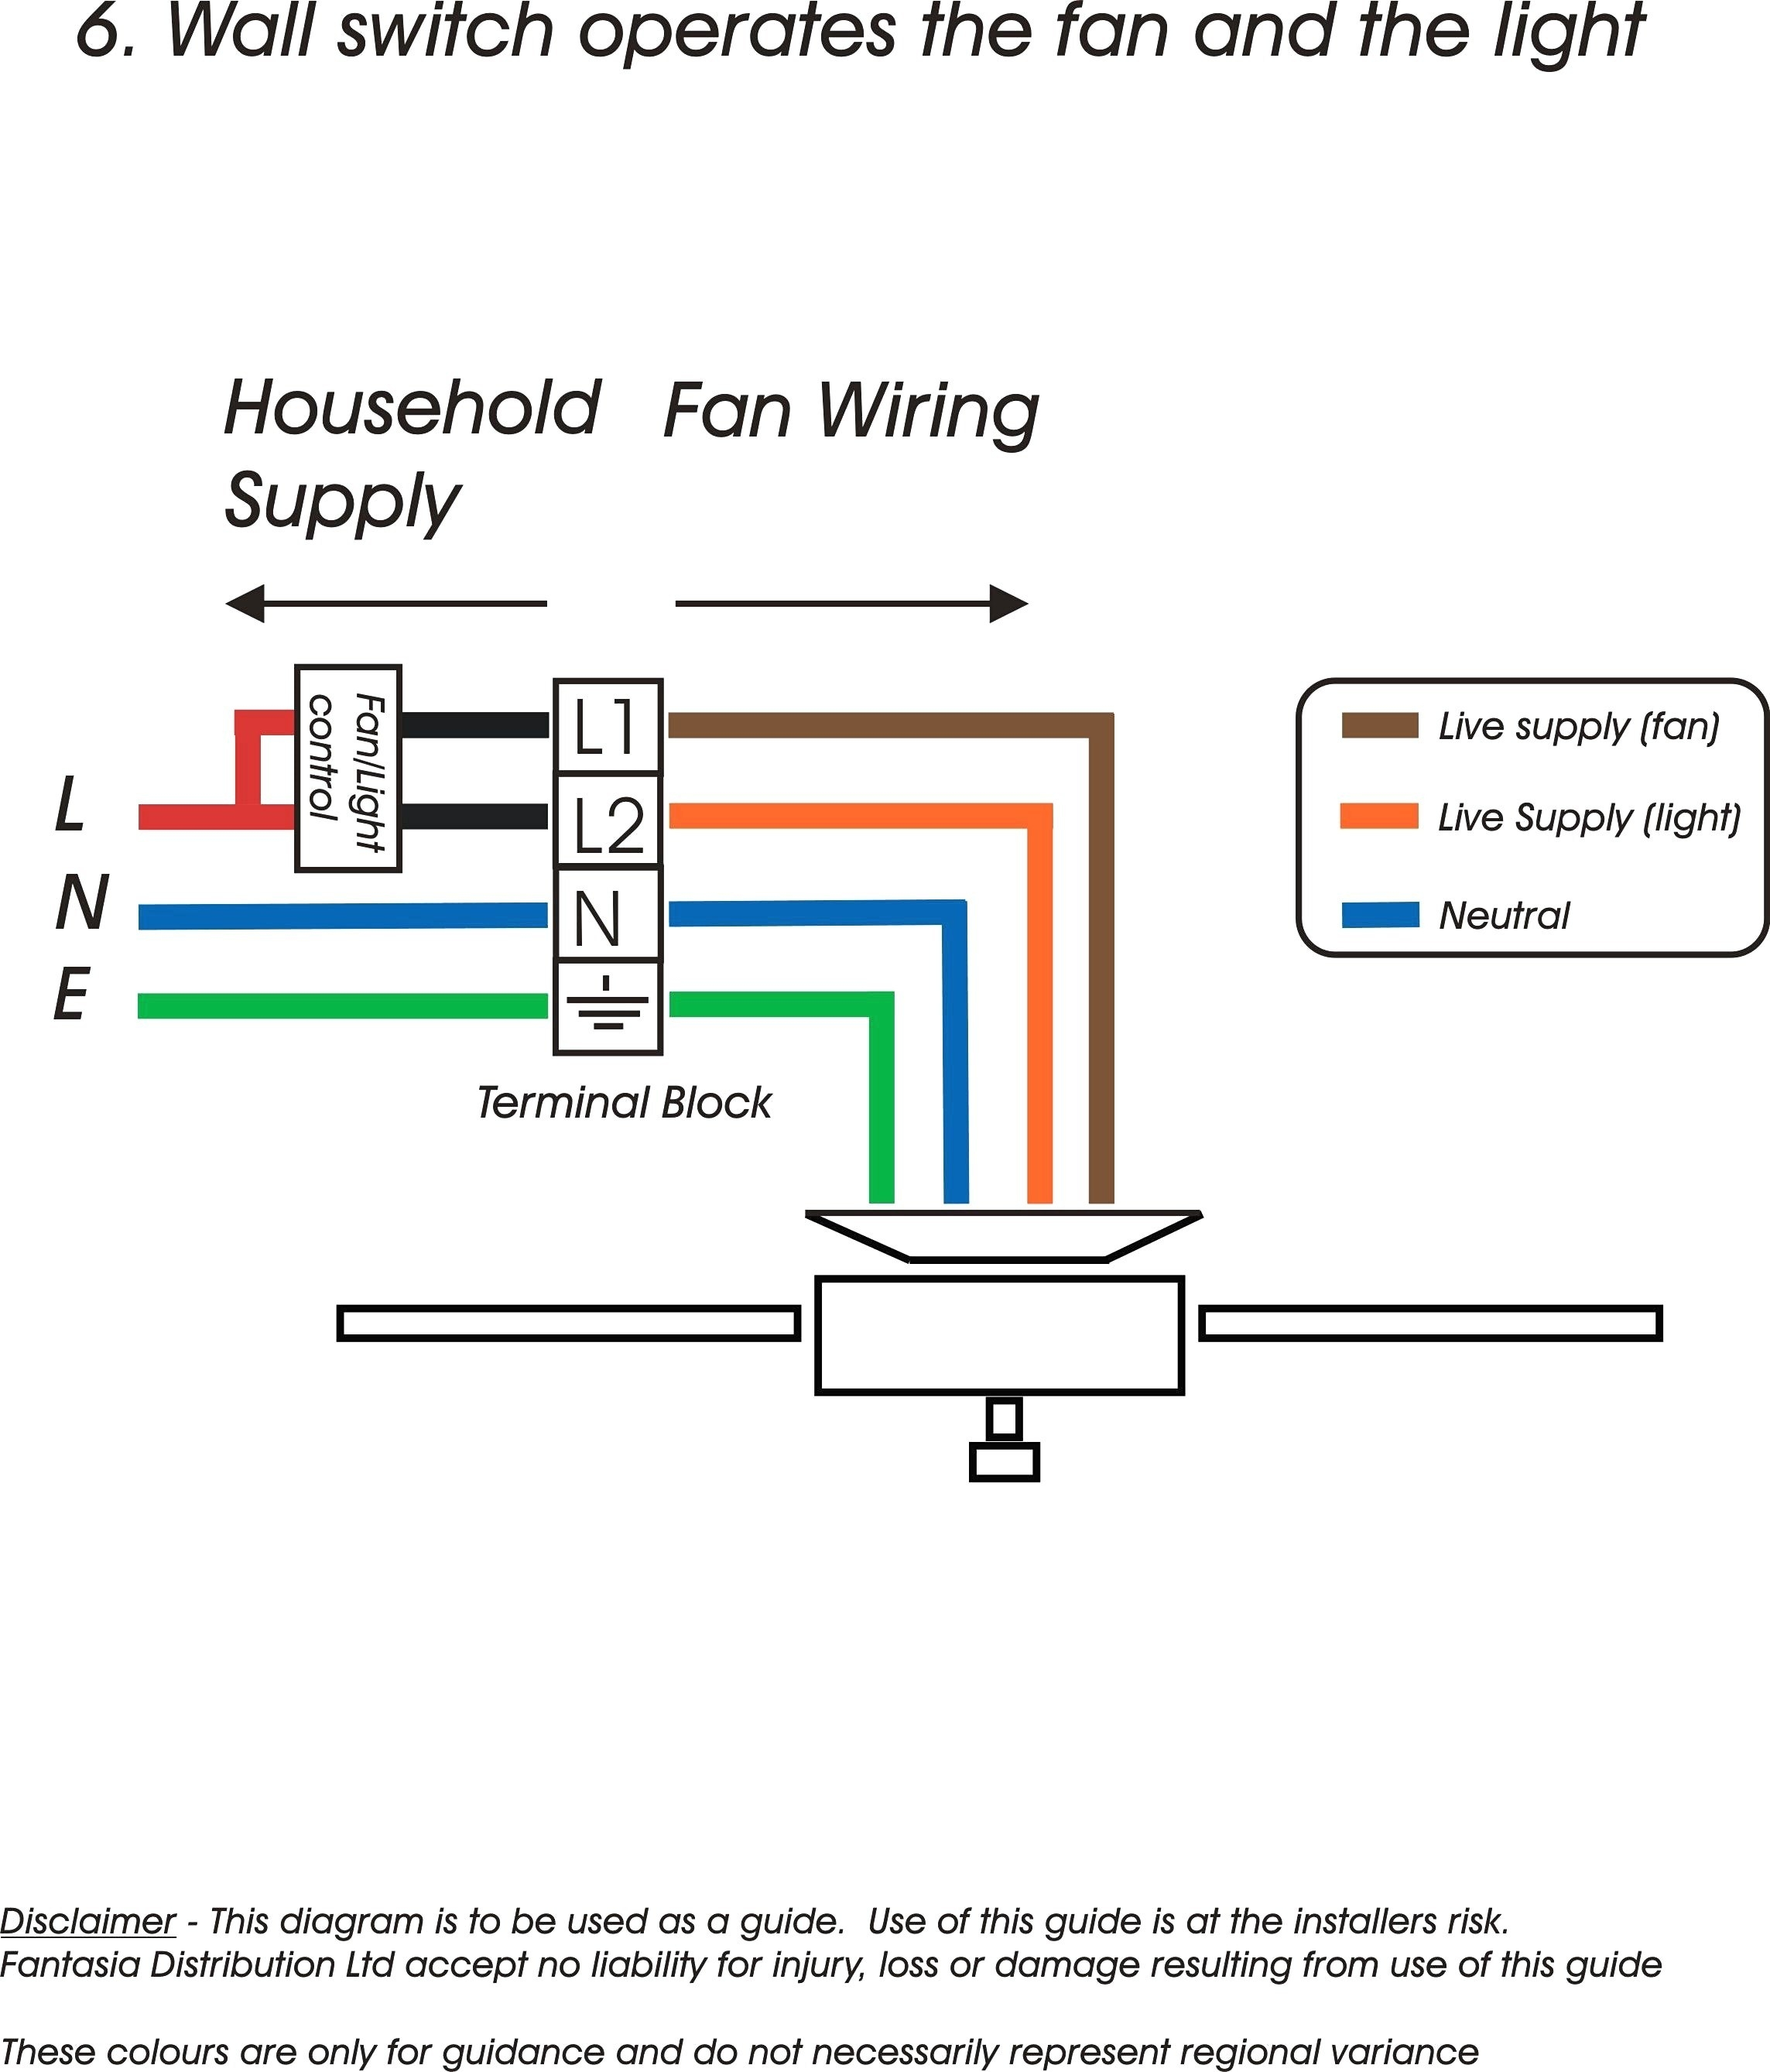 sign ballast wiring diagram Download-fluorescent emergency ballast wiring diagram Download emergency ballast wiring diagrams for electrical wire center u2022 DOWNLOAD Wiring Diagram 17-r